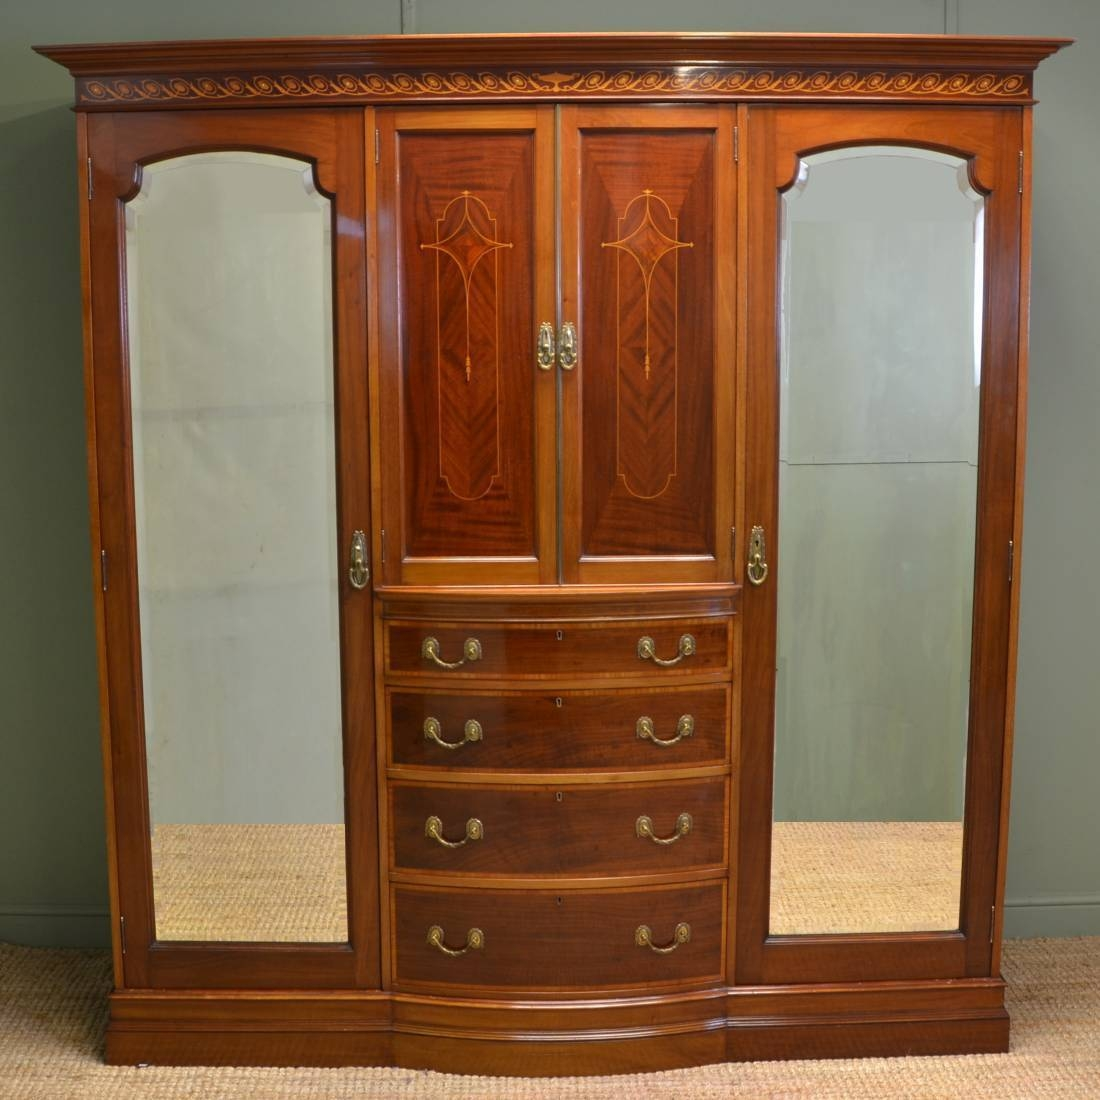 Spectacular Inlaid Mahogany Antique Victorian Triple Wardrobe pertaining to Antique Triple Wardrobes (Image 10 of 15)